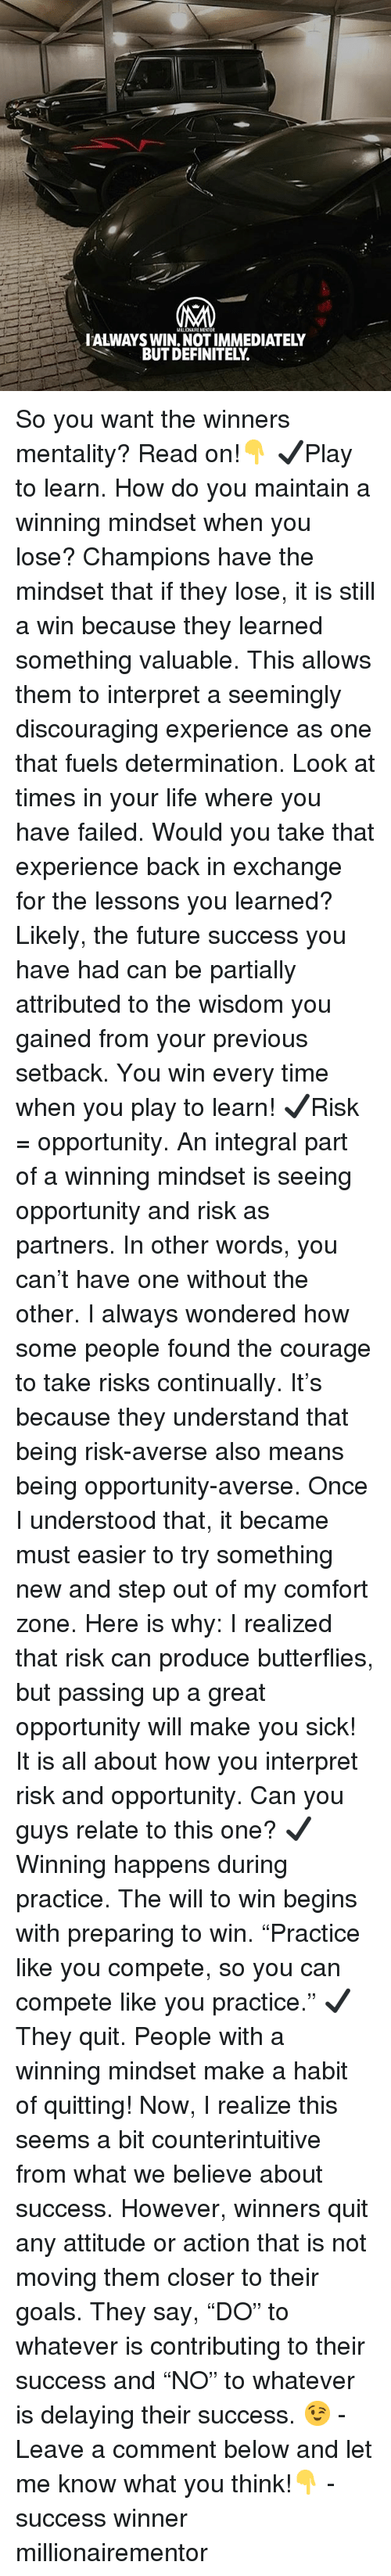 """Definitely, Future, and Goals: WILLIONAIRE MENTOR  IALWAYS WIN. NOT IMMEDIATELY  BUT DEFINITELY. So you want the winners mentality? Read on!👇 ✔️Play to learn. How do you maintain a winning mindset when you lose? Champions have the mindset that if they lose, it is still a win because they learned something valuable. This allows them to interpret a seemingly discouraging experience as one that fuels determination. Look at times in your life where you have failed. Would you take that experience back in exchange for the lessons you learned? Likely, the future success you have had can be partially attributed to the wisdom you gained from your previous setback. You win every time when you play to learn! ✔️Risk = opportunity. An integral part of a winning mindset is seeing opportunity and risk as partners. In other words, you can't have one without the other. I always wondered how some people found the courage to take risks continually. It's because they understand that being risk-averse also means being opportunity-averse. Once I understood that, it became must easier to try something new and step out of my comfort zone. Here is why: I realized that risk can produce butterflies, but passing up a great opportunity will make you sick! It is all about how you interpret risk and opportunity. Can you guys relate to this one? ✔️Winning happens during practice. The will to win begins with preparing to win. """"Practice like you compete, so you can compete like you practice."""" ✔️They quit. People with a winning mindset make a habit of quitting! Now, I realize this seems a bit counterintuitive from what we believe about success. However, winners quit any attitude or action that is not moving them closer to their goals. They say, """"DO"""" to whatever is contributing to their success and """"NO"""" to whatever is delaying their success. 😉 - Leave a comment below and let me know what you think!👇 - success winner millionairementor"""